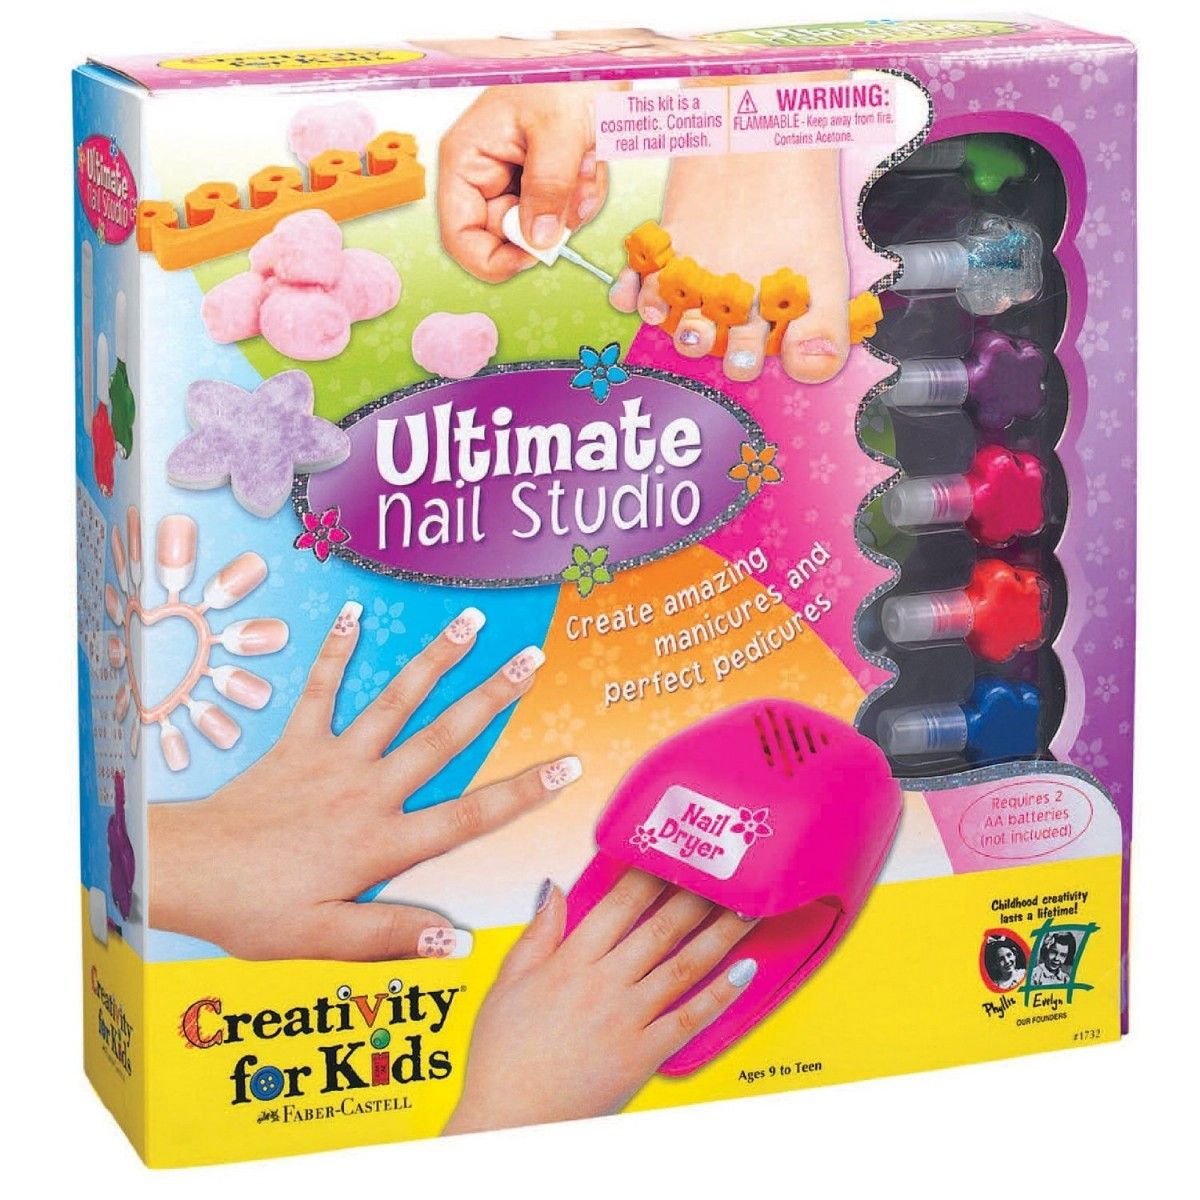 Create your own amazing manicures and perfect pedicures with this ...